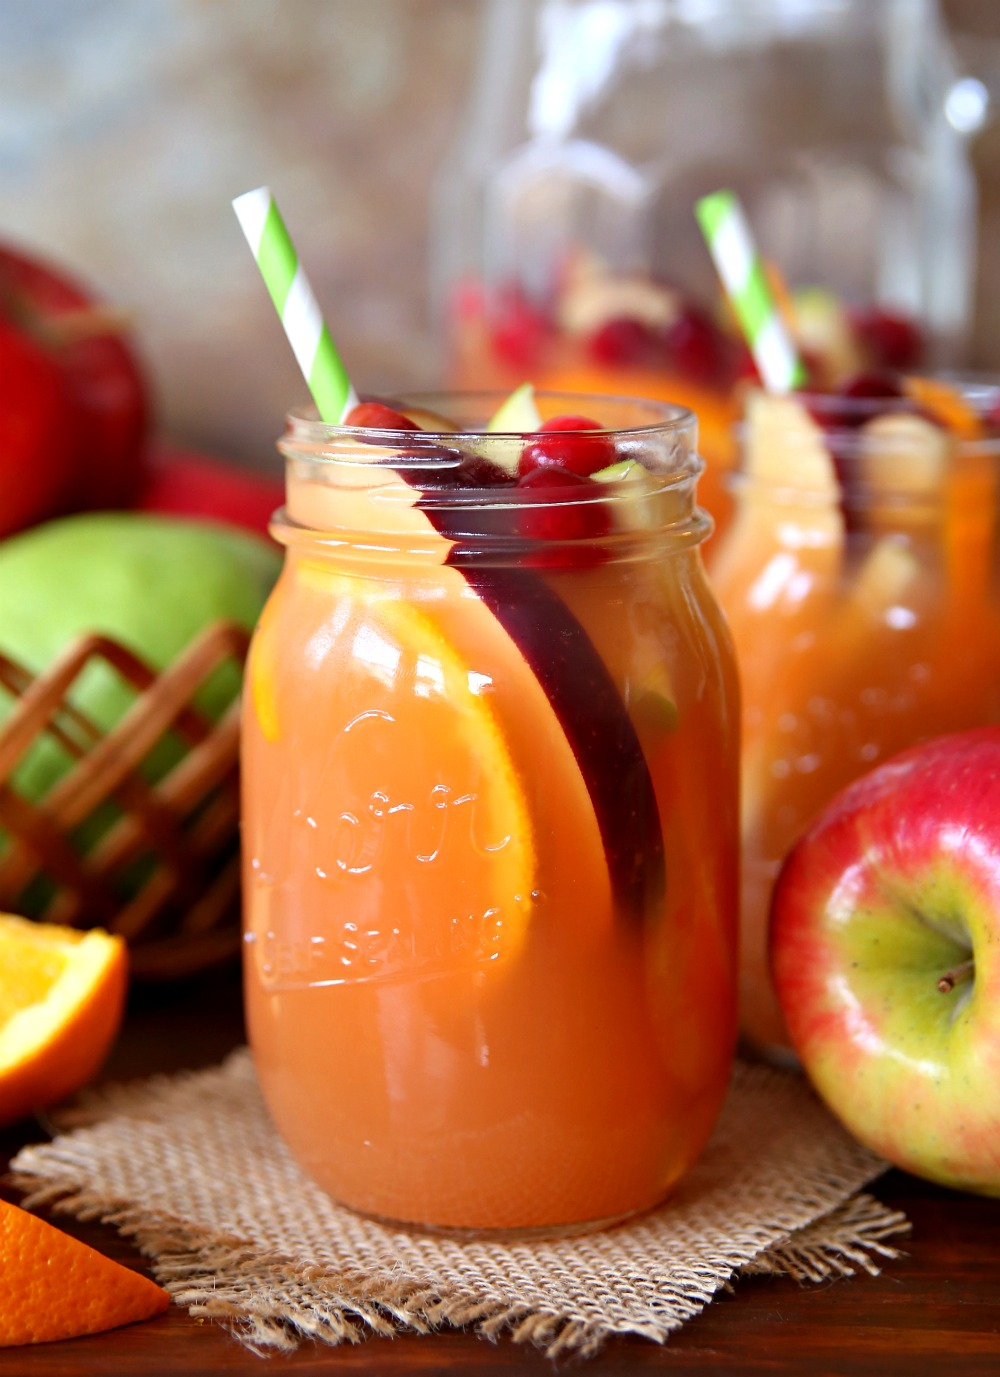 This Autumn Harvest Rum Punch has all the flavors of fall in one party punch recipe. The best fall cocktail for a crowd!